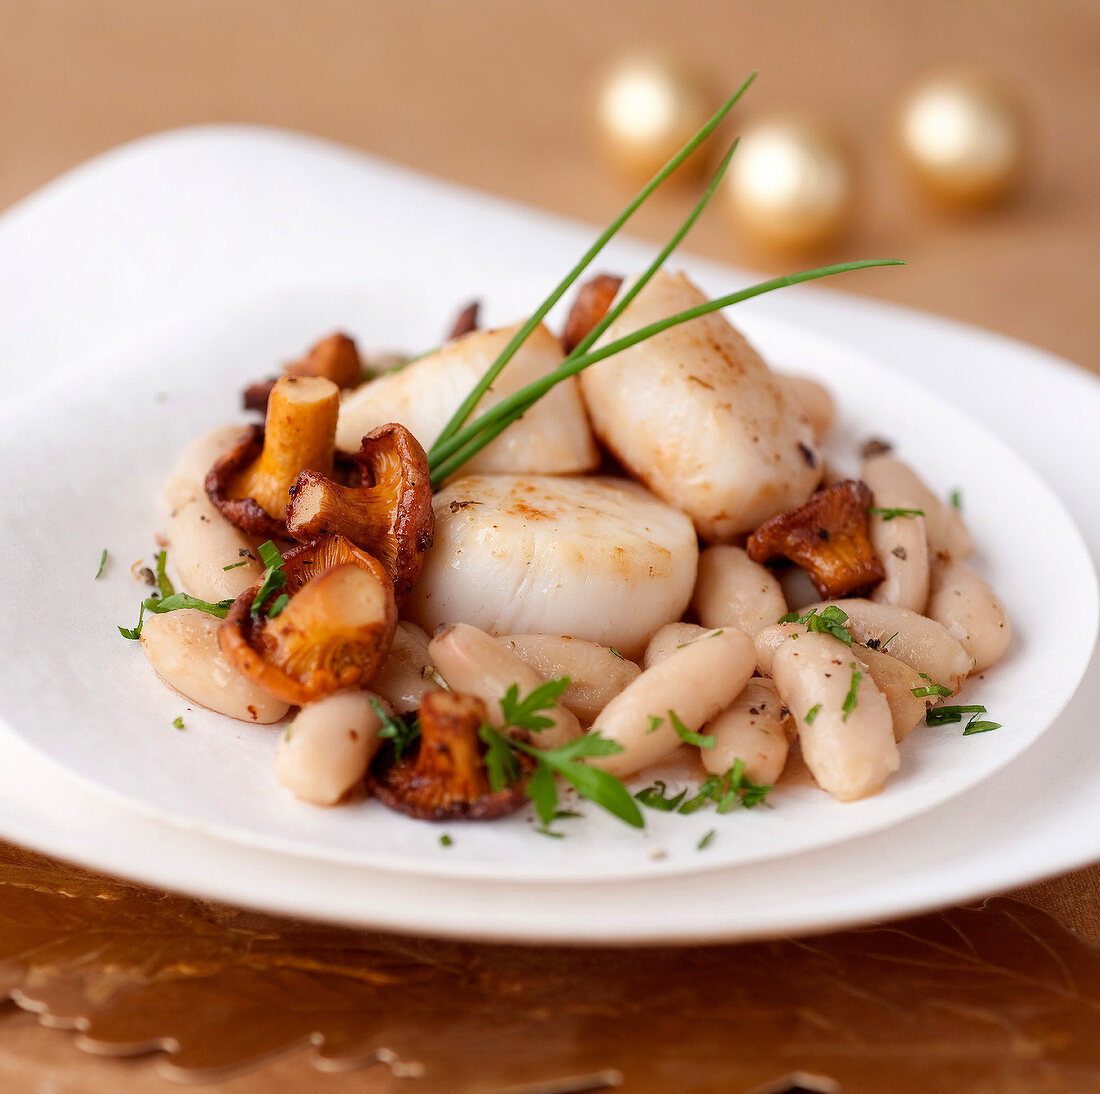 Scallops with white haricot beans and chanterelles